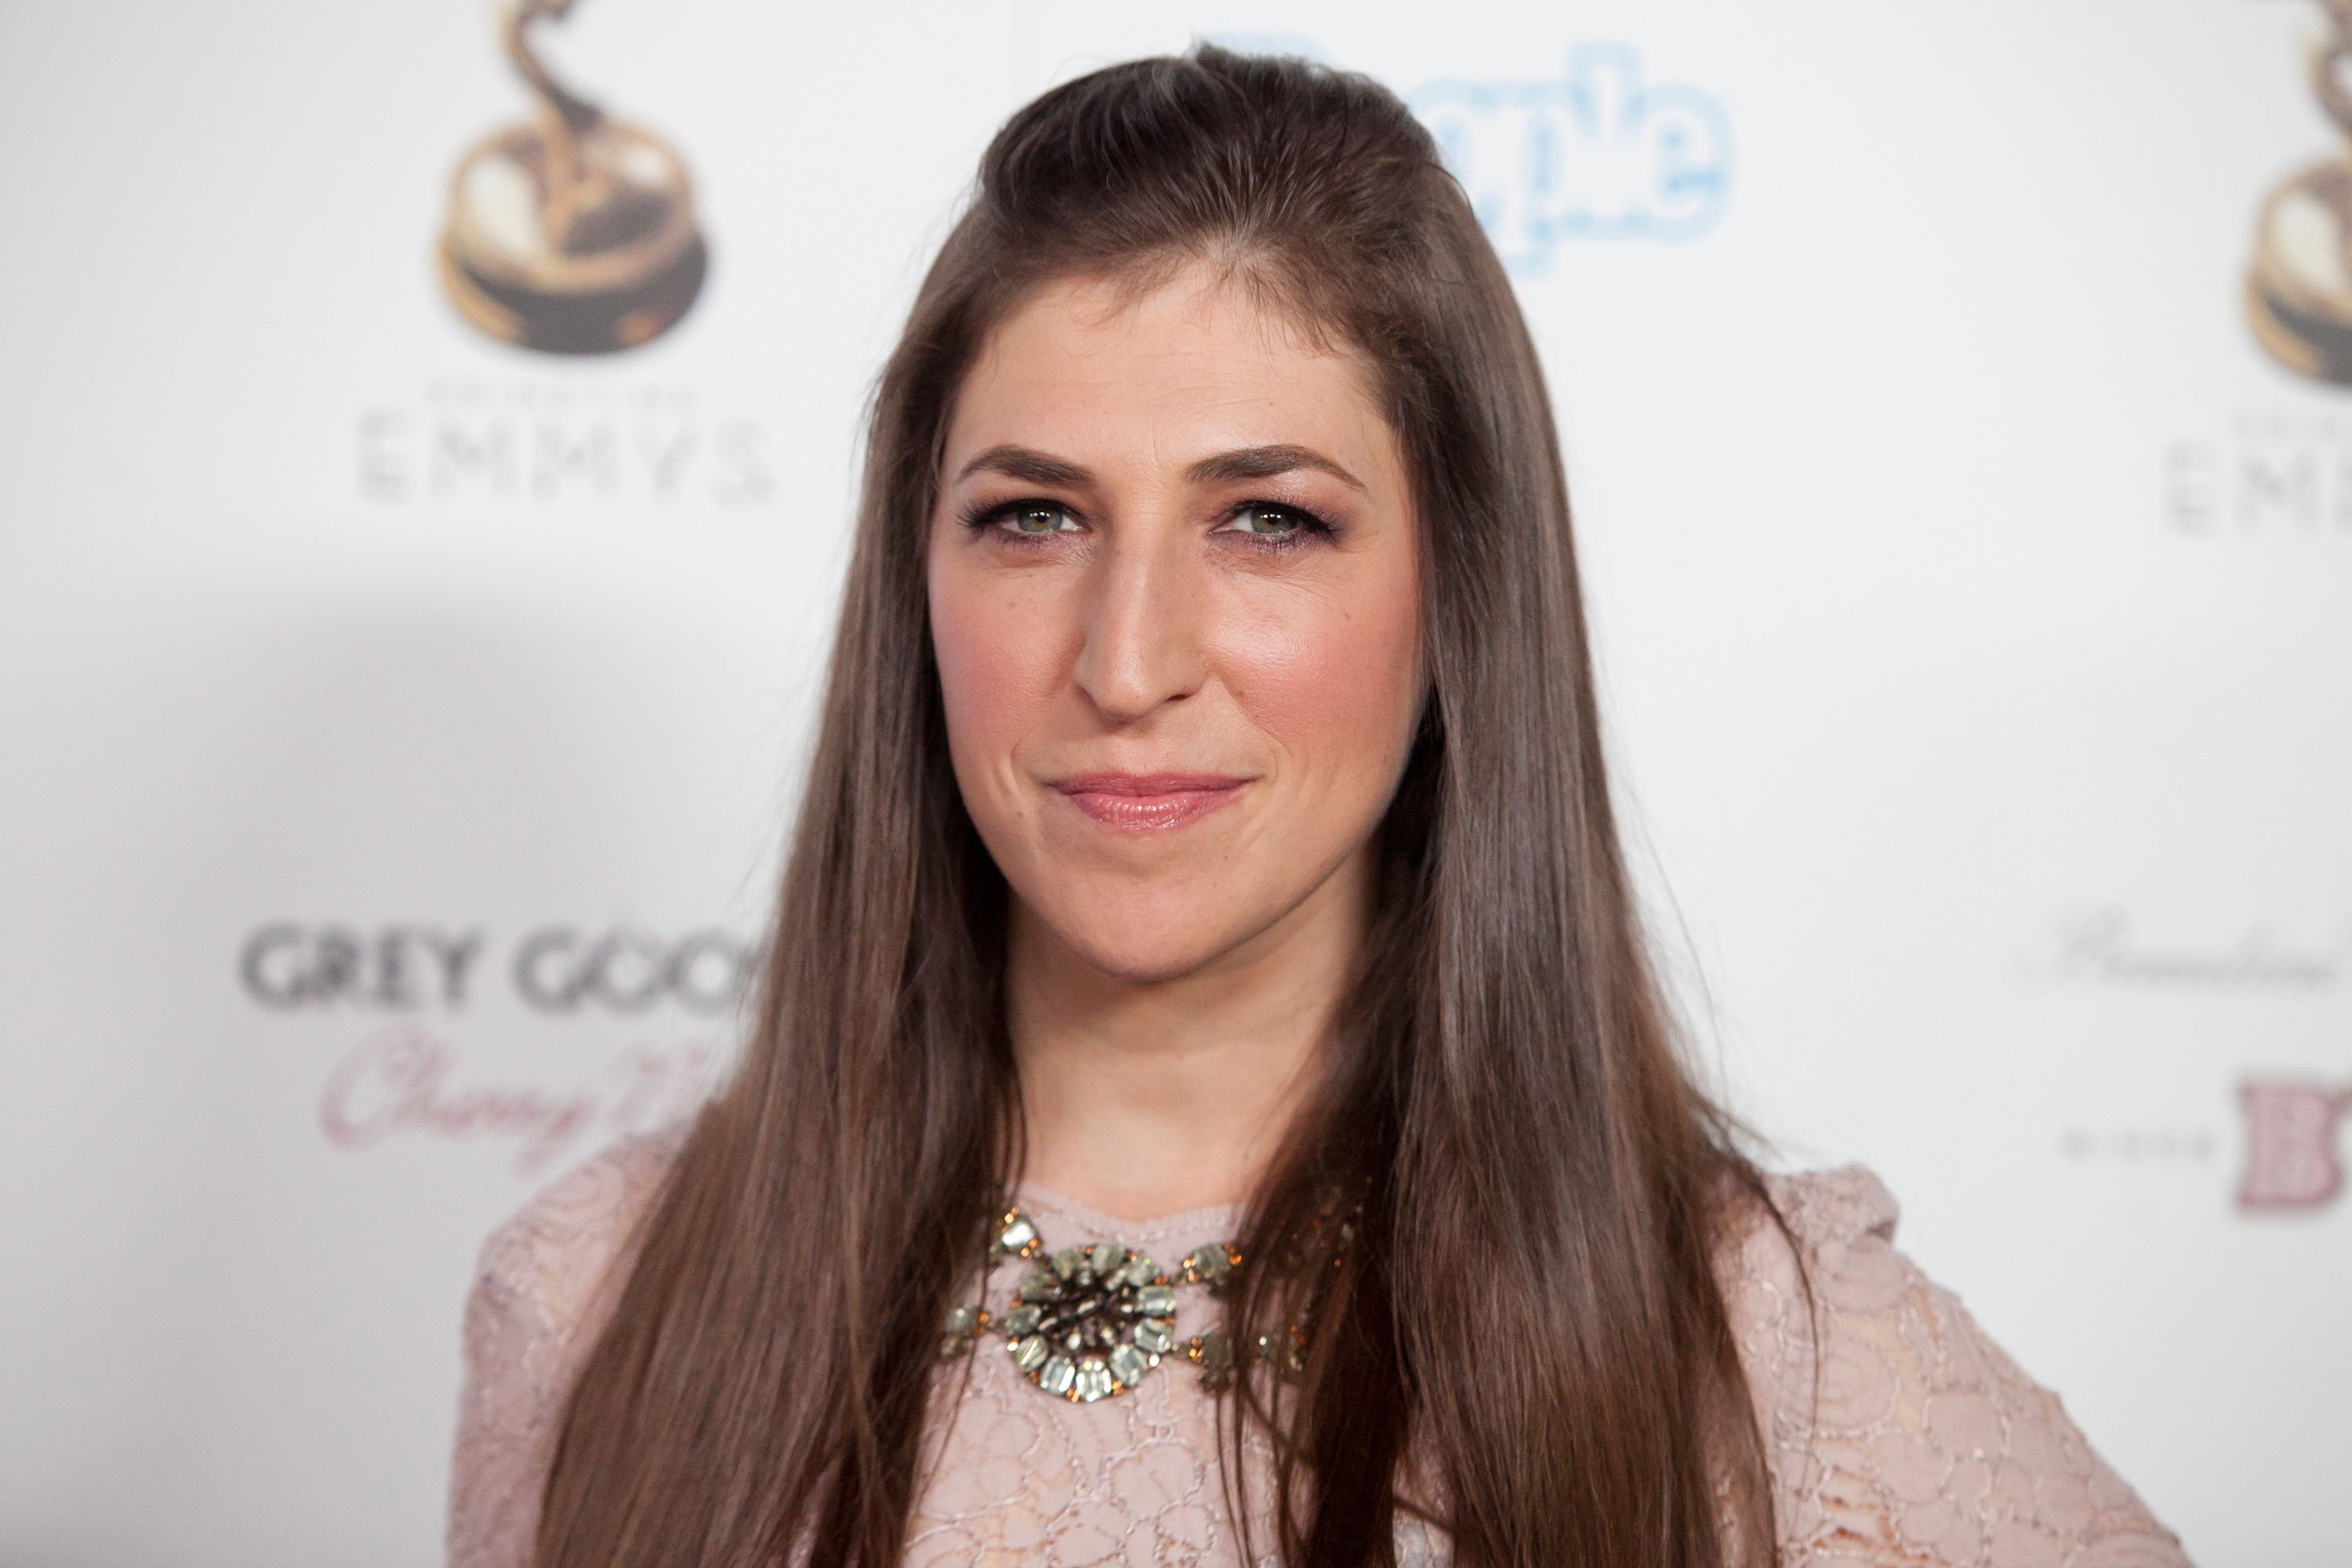 Image Credits: Getty Images / Imeh Akpanudosen | Actress Mayim Bialik attends The Academy Of Television Arts & Sciences Performer Nominees' 64th Primetime Emmy Awards Reception at Spectra by Wolfgang Puck at the Pacific Design Center on September 21, 2012 in West Hollywood, California.